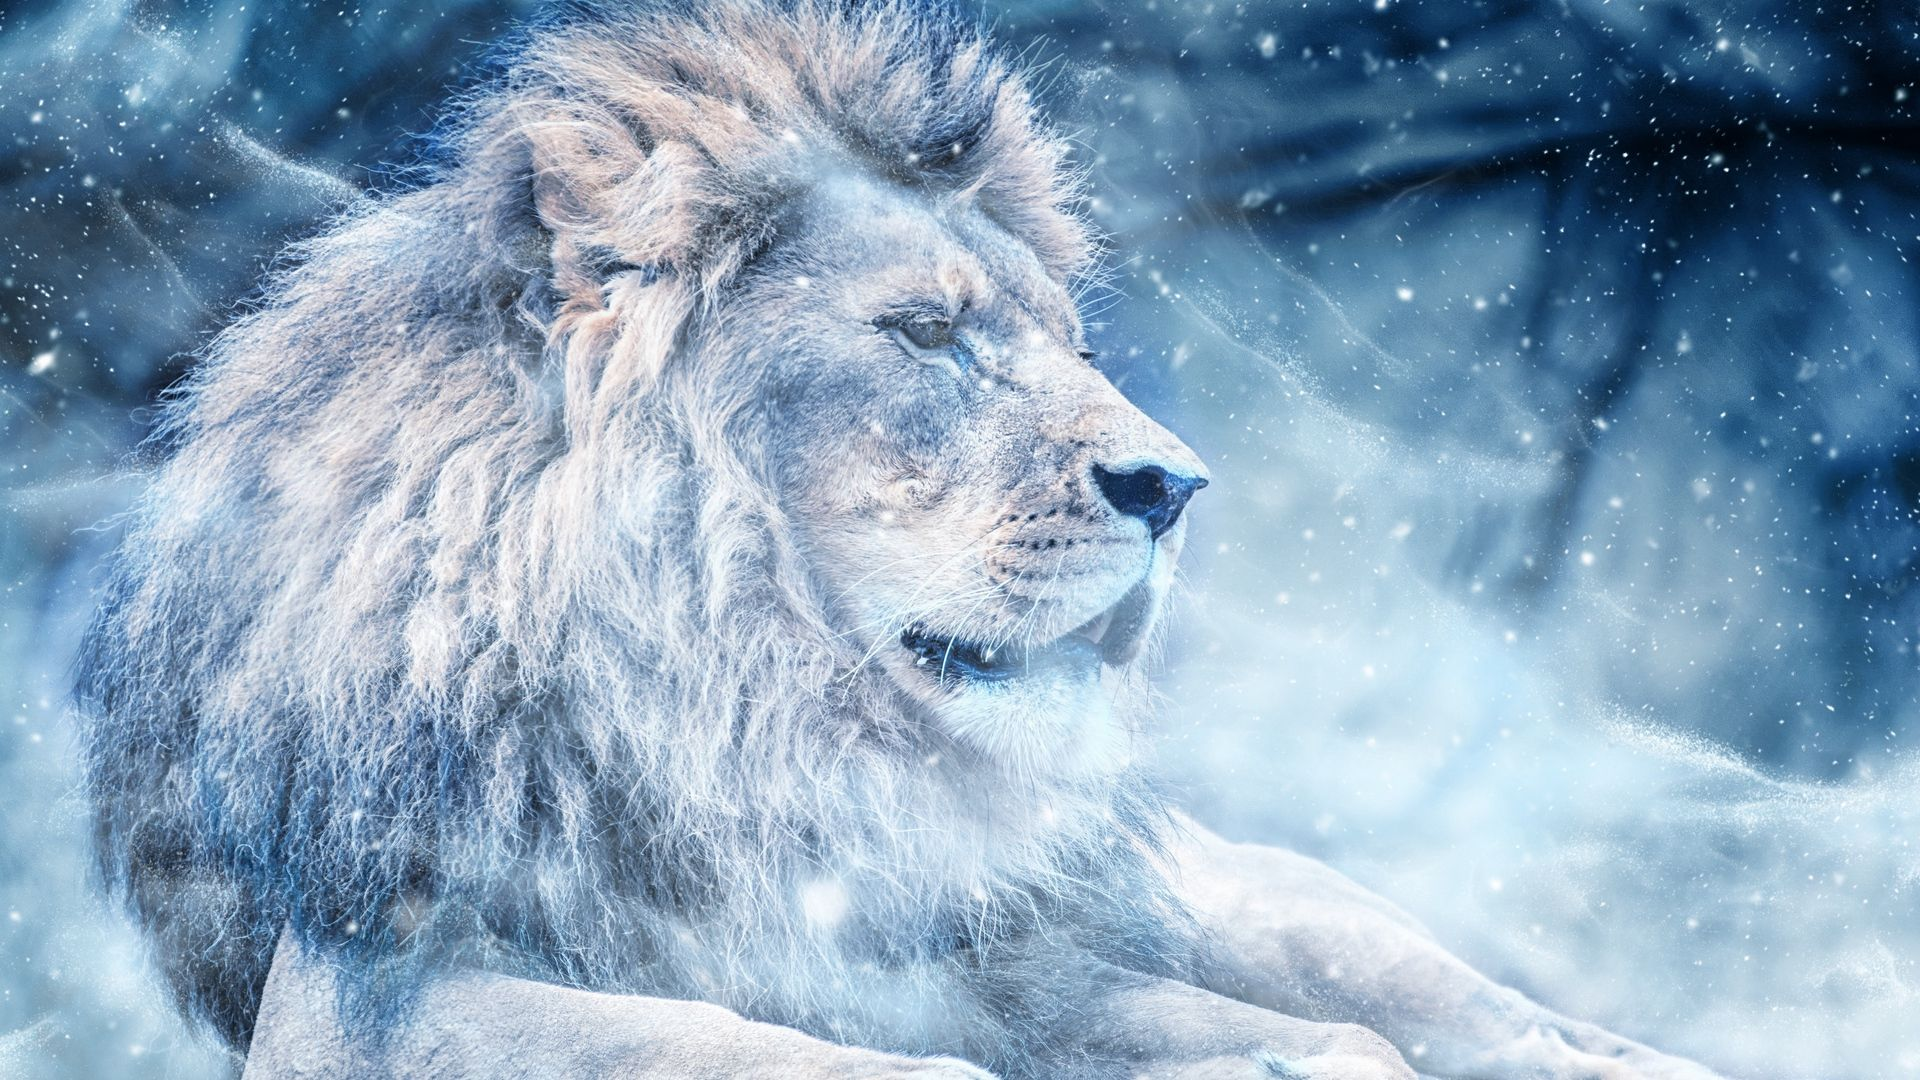 1920x1080 Download wallpaper 1920x1080 lion, snow, big cat, king of ...